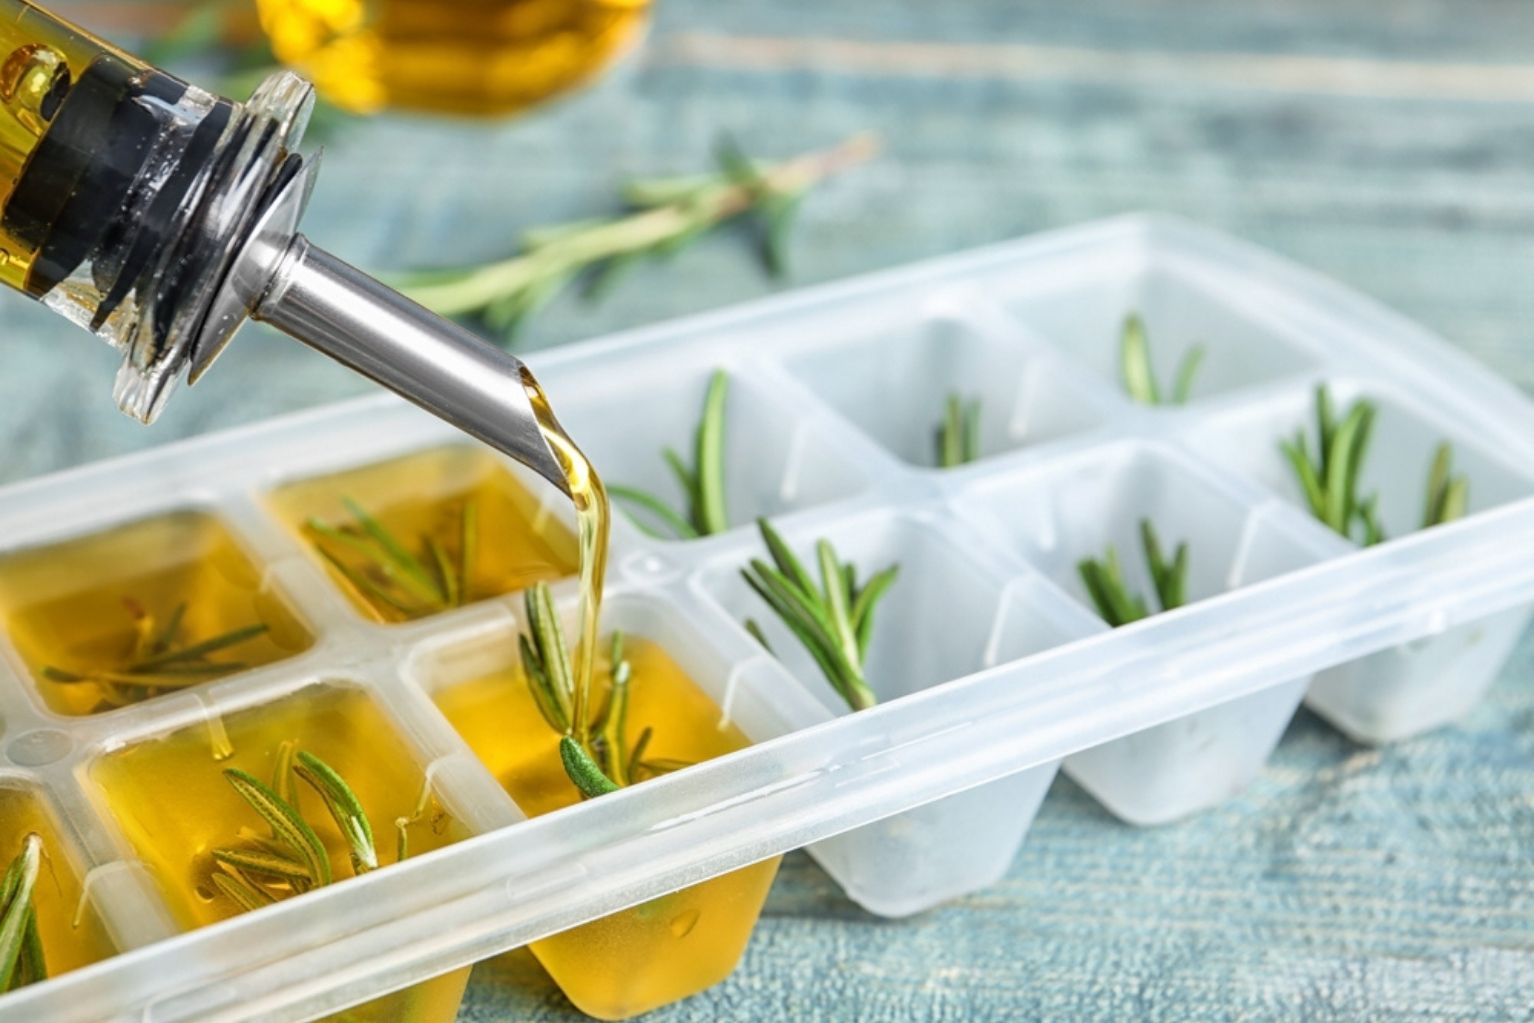 Olive oil being poured into an ice cube tray with rosemary in it.